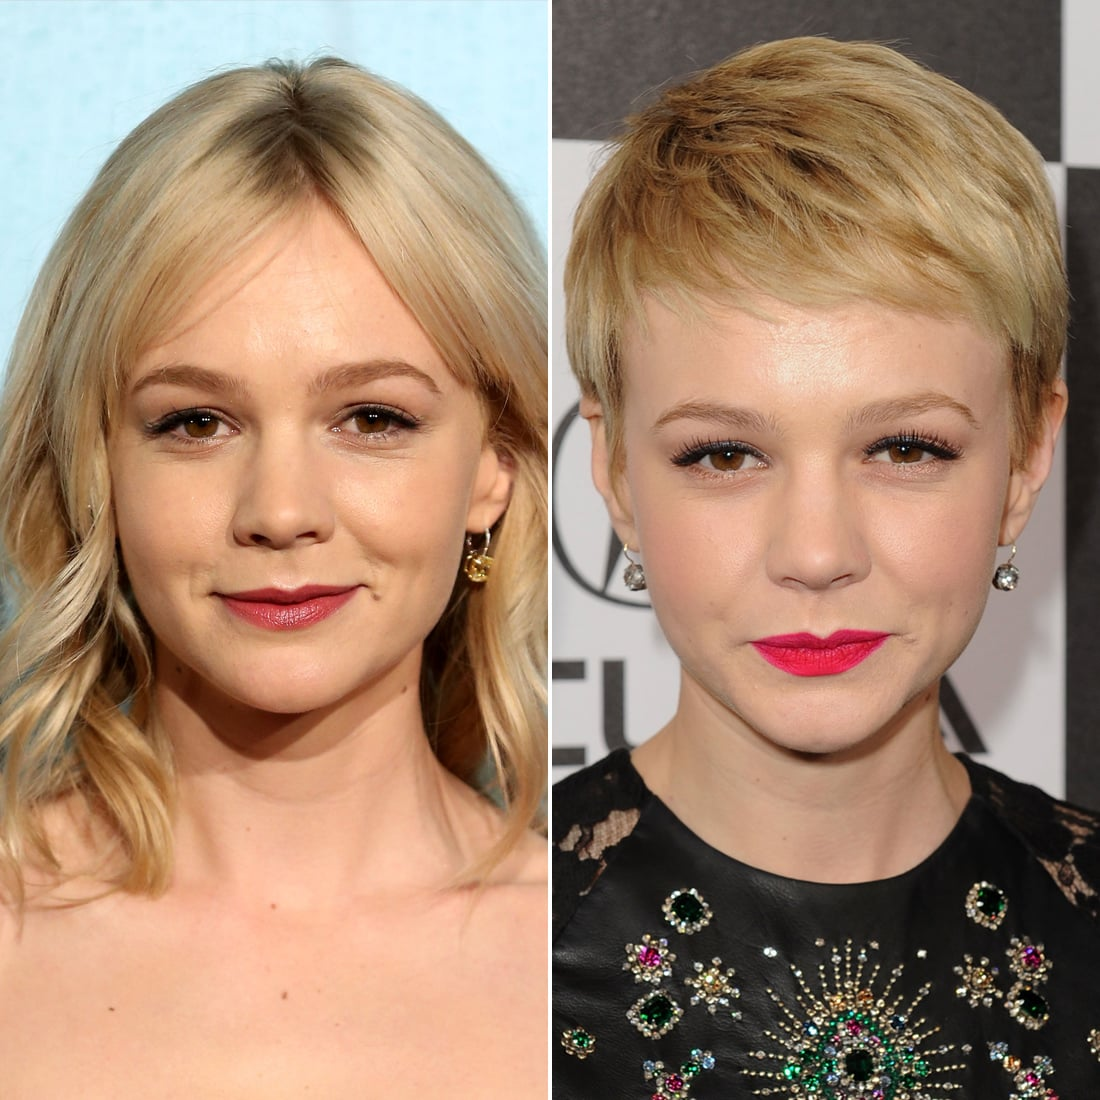 Carey Mulligan Do These Celebrities Look Better With Long Or Short Hair Popsugar Beauty Photo 24